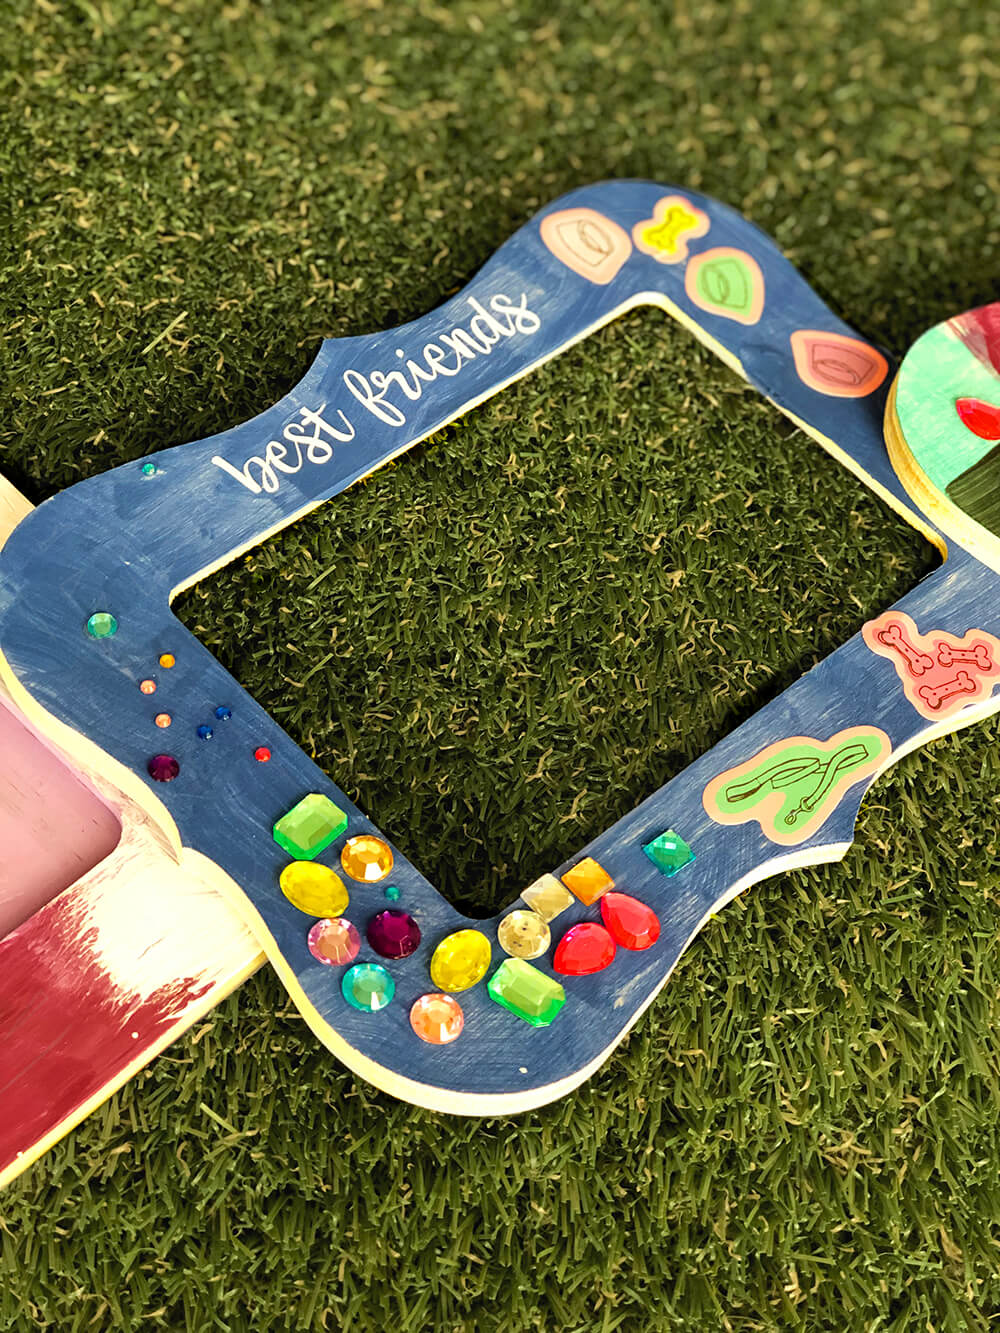 Best friends frame - Puppy party activity ideas for kids